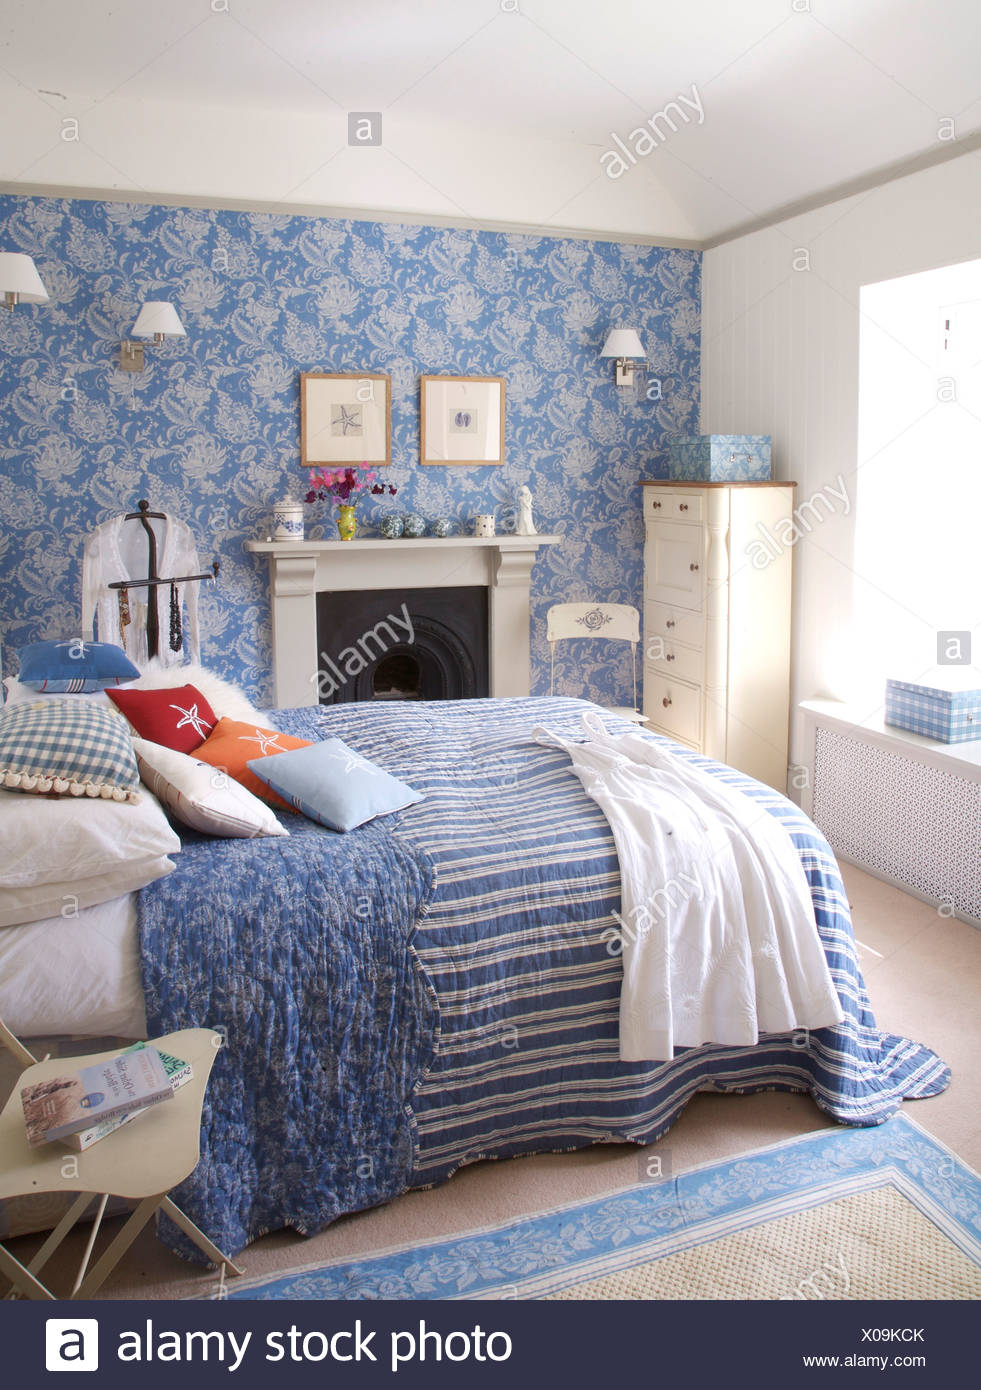 Blue Striped Quilt With Floral Lining On Bed In Coastal Bedroom With